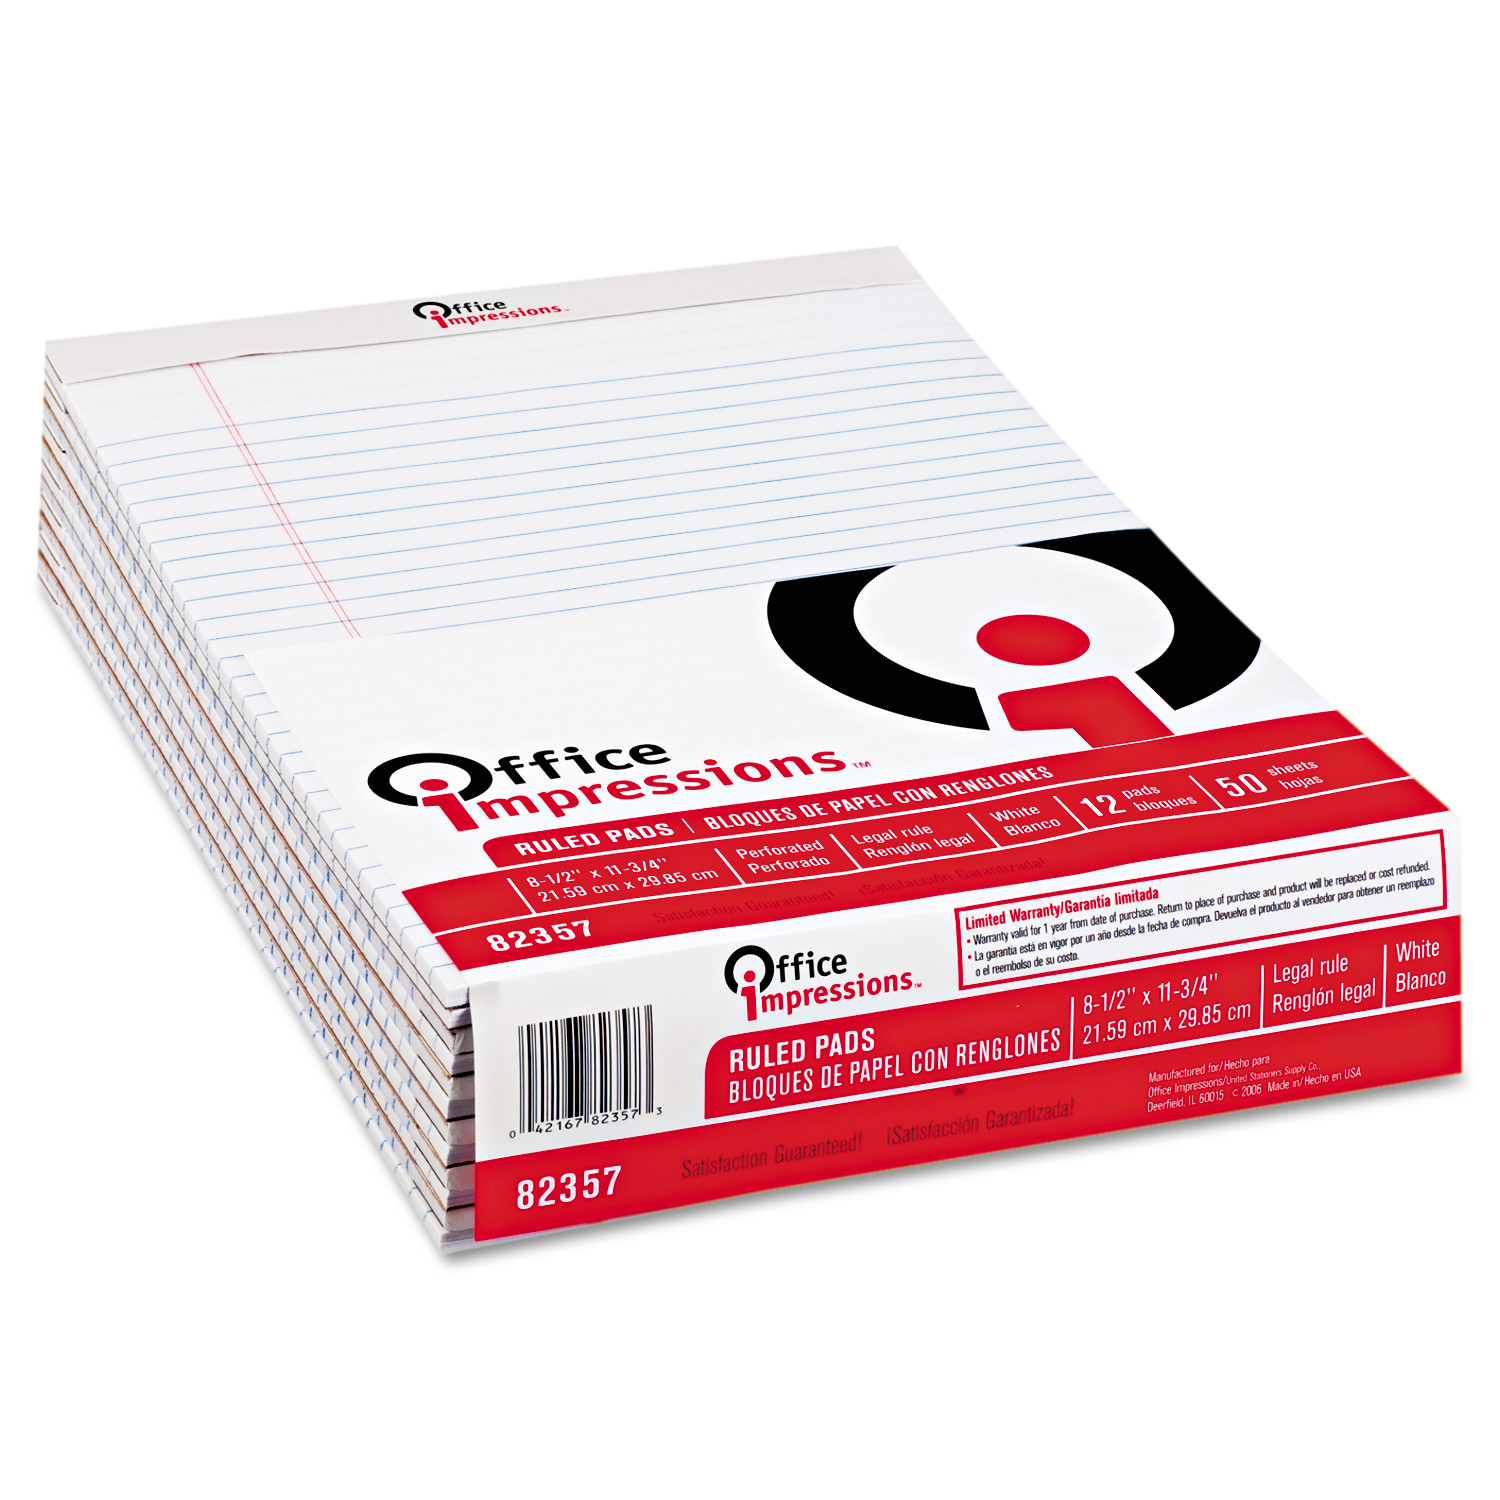 Office Impressions Perforated Edge Legal Ruled 50-Sheet Writing Pads, 12pk, White